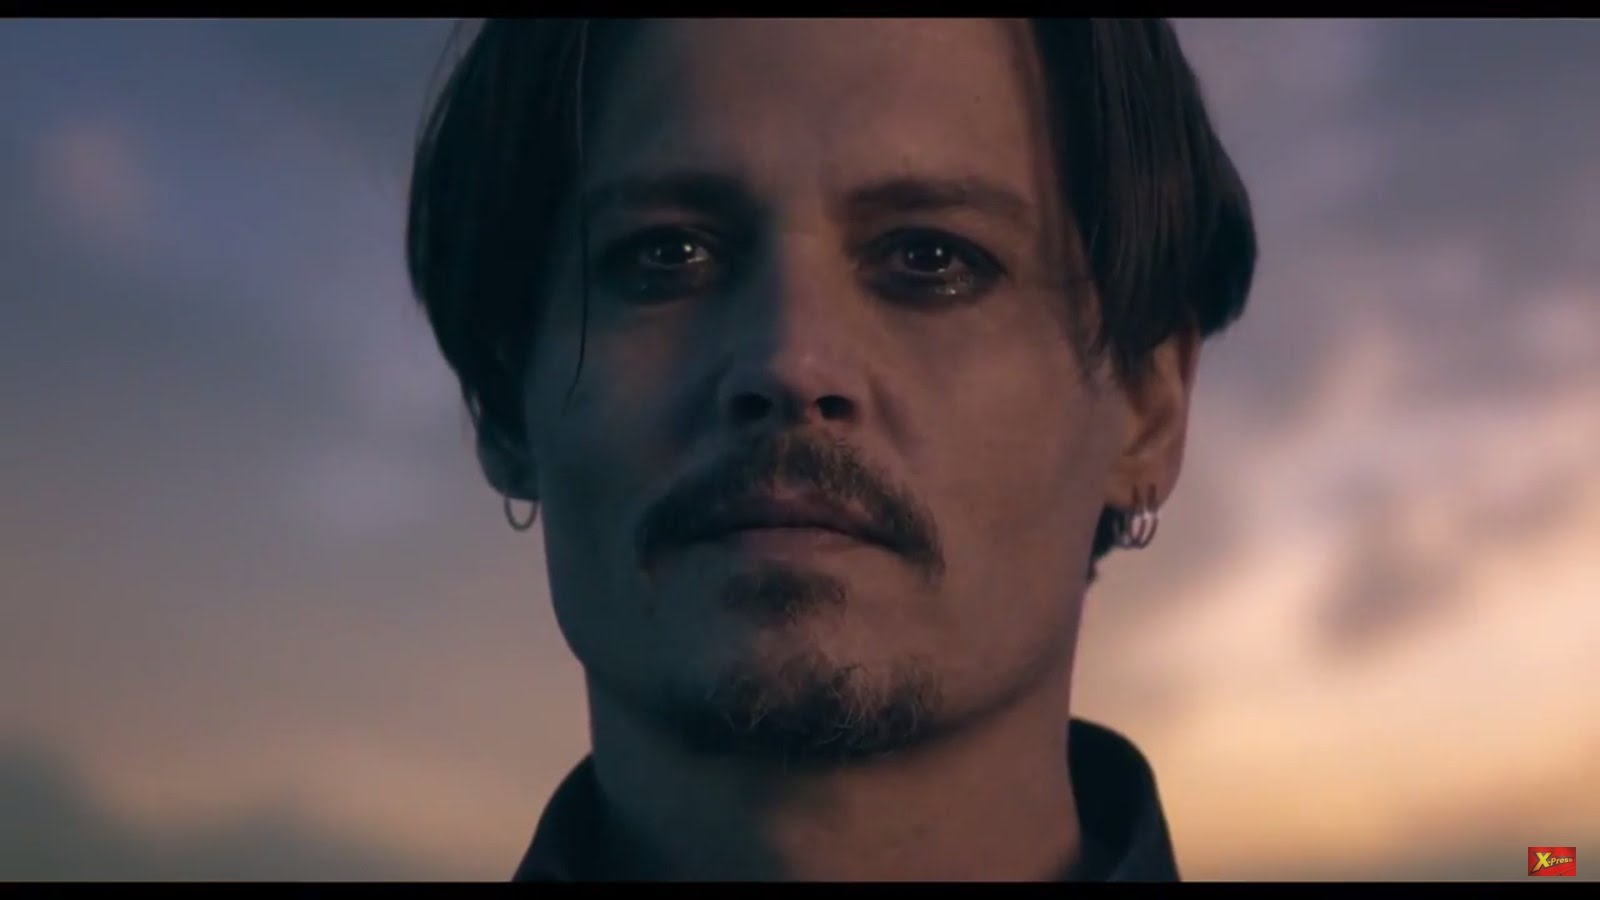 """dior-in-hot-water-over-new-sauvage-ad-featuring-johnny-depp-people-are-outraged-by-the-cultural-appropriation"""